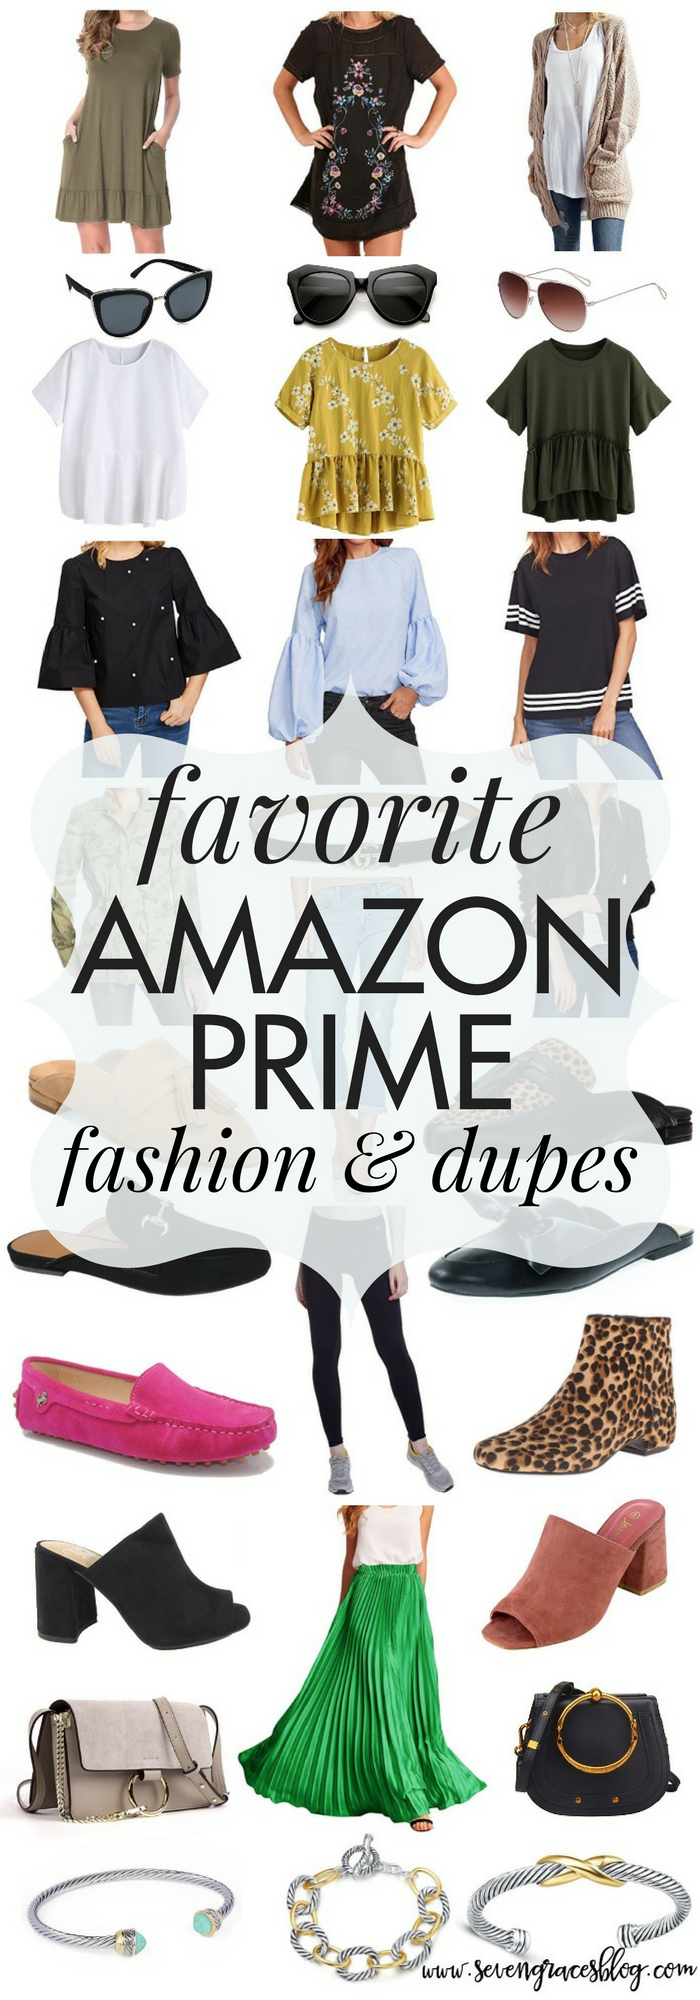 f037159d982a The ultimate Amazon Prime fashion picks for your closet. The best pieces to  add to